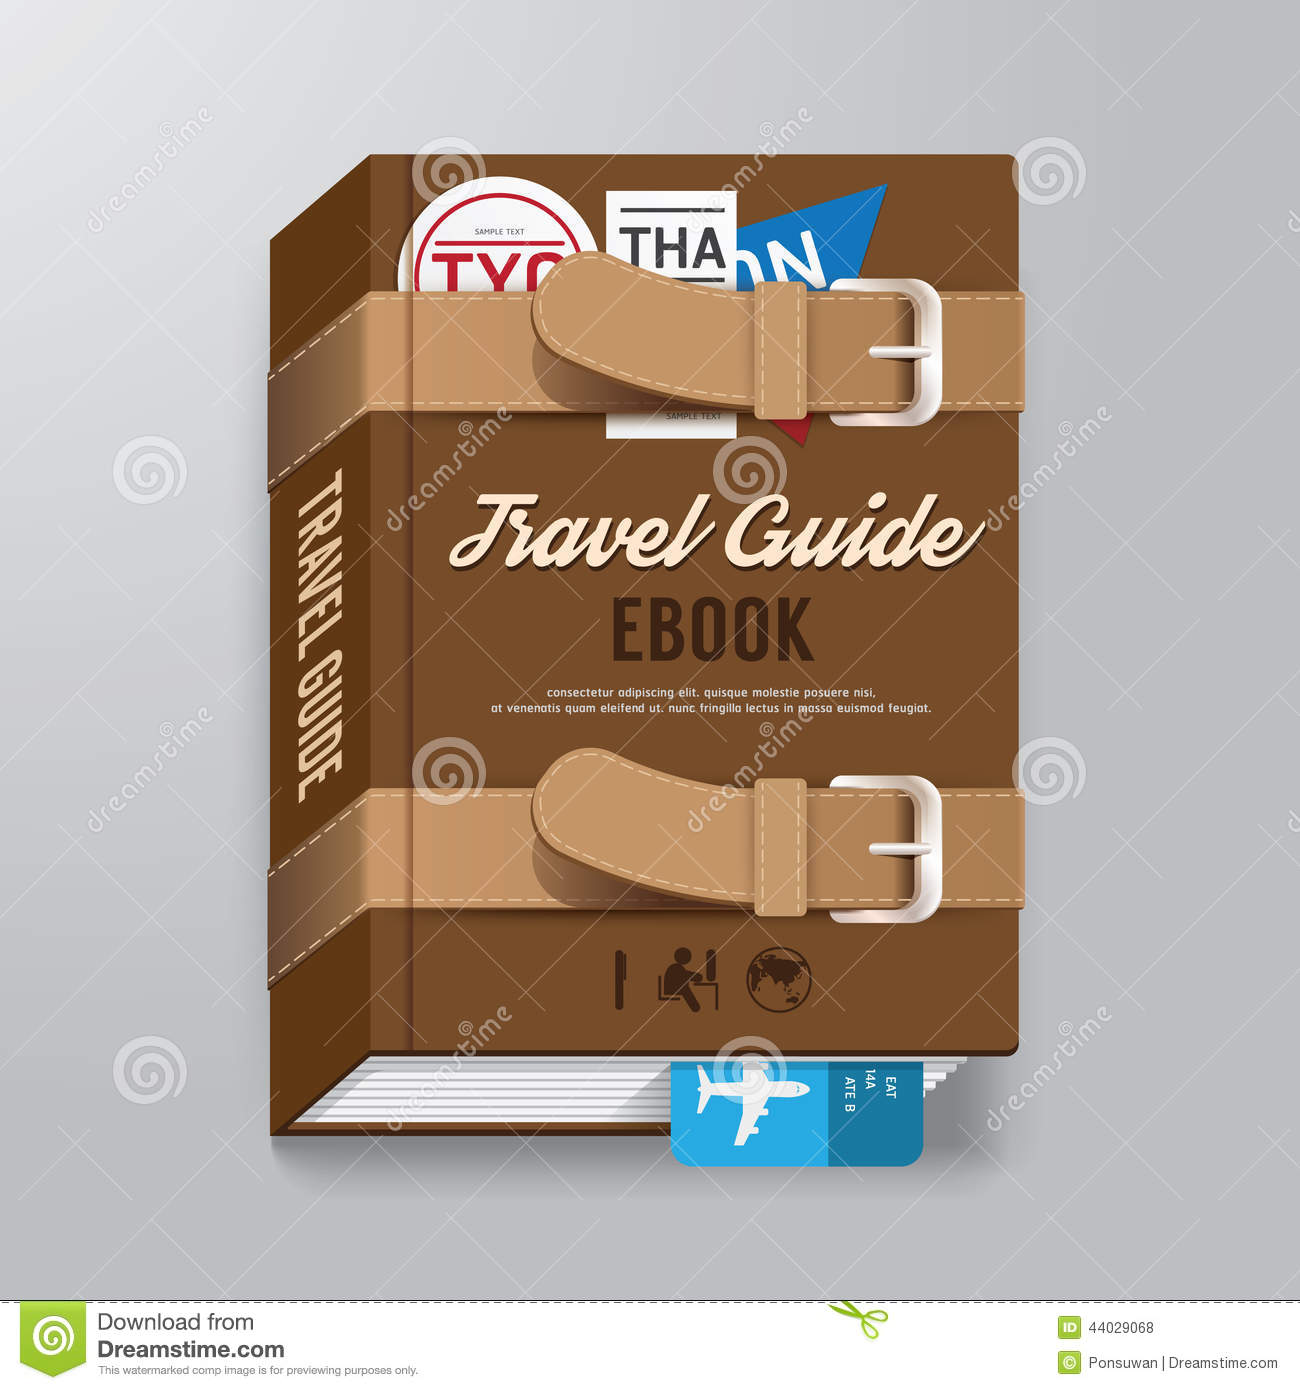 Guide Book Cover Design : Book cover travel guide design luggage concept template